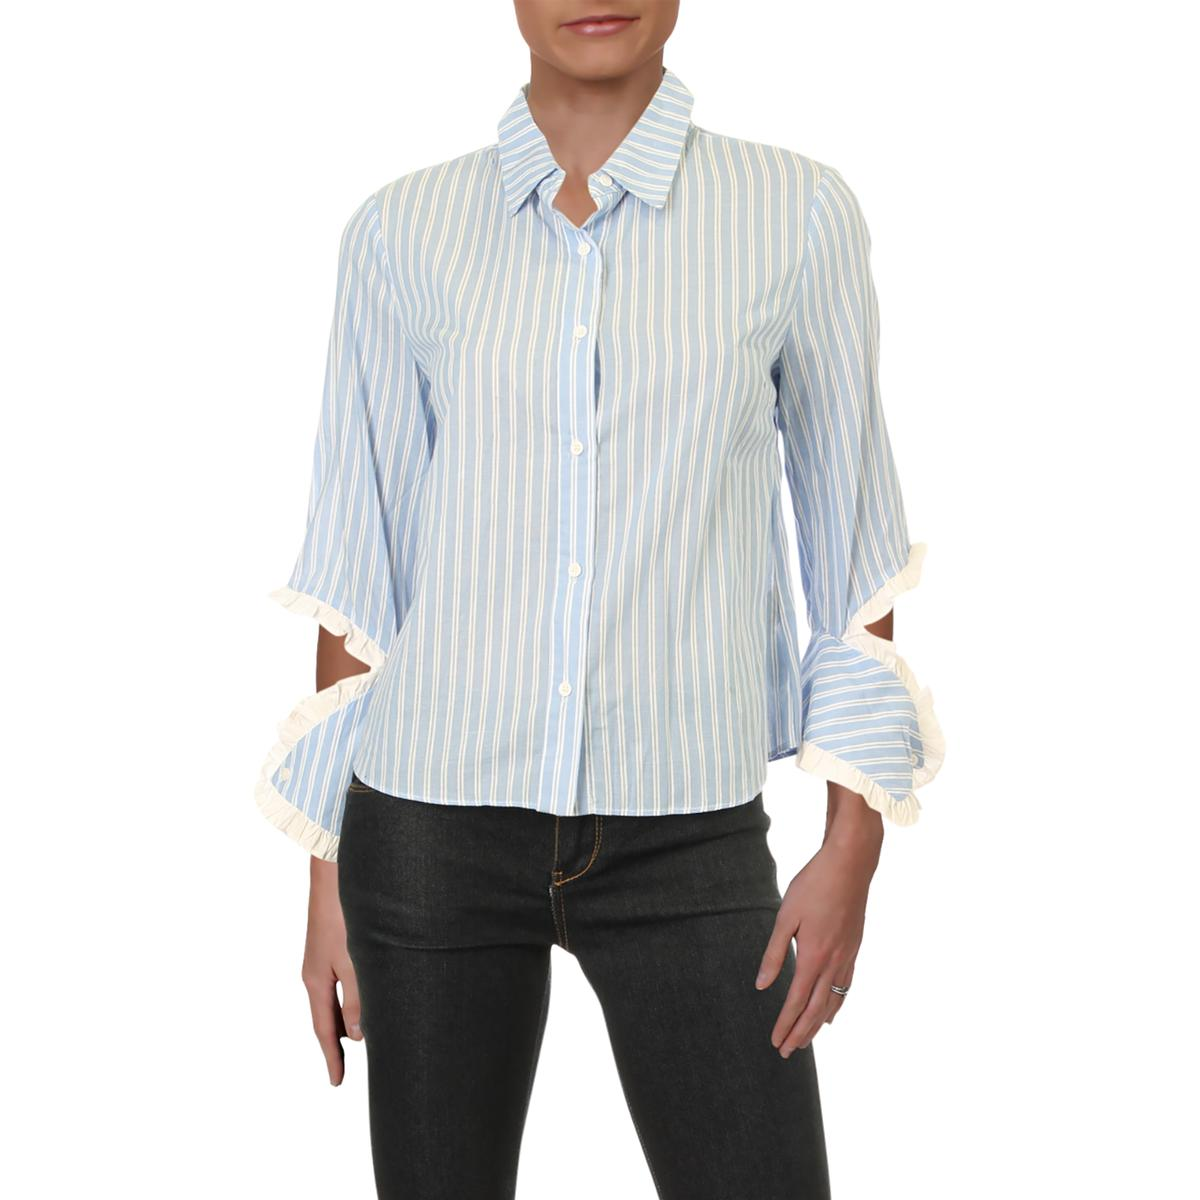 Lucky Brand Womens Striped Side-Slit Casual Button-Down Top Blouse BHFO 3313